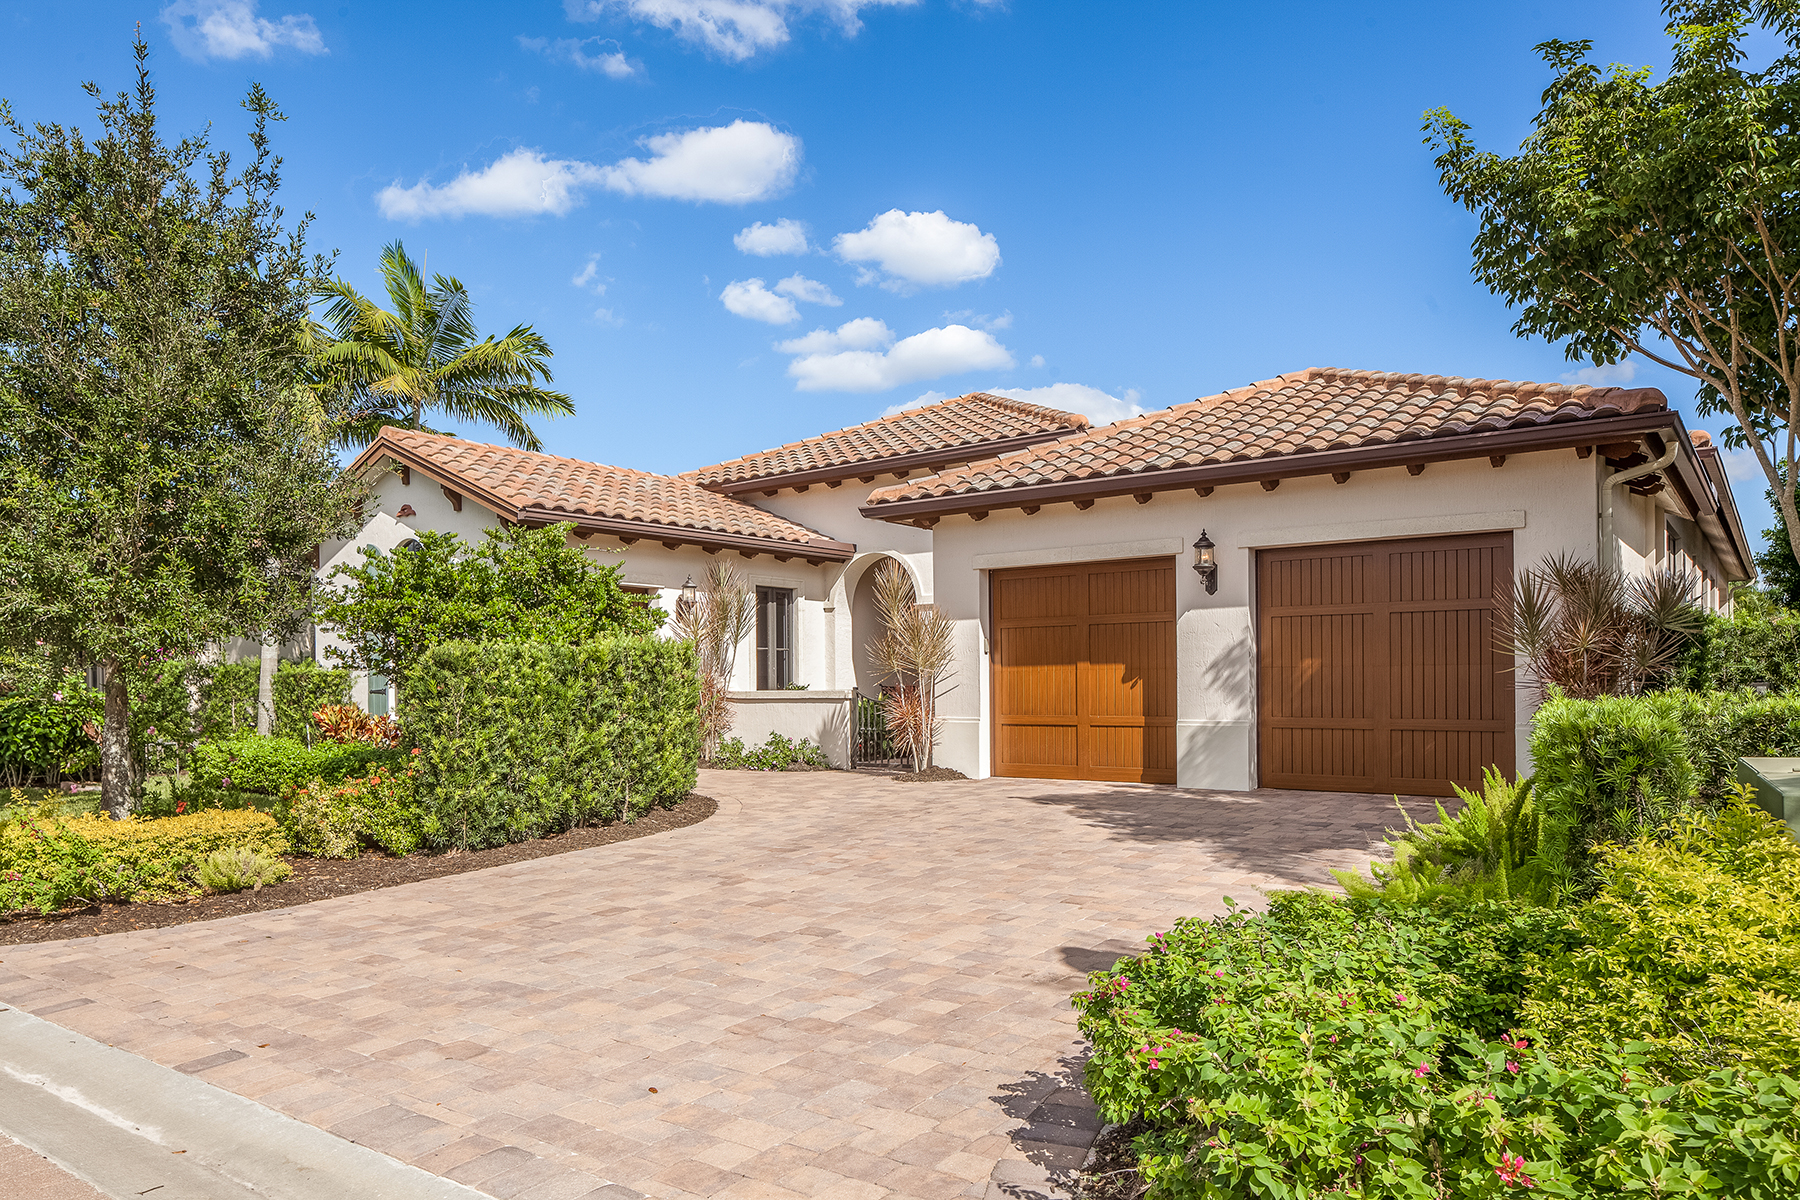 Single Family Home for Sale at GREY OAKS - TRADITIONS 2224 Residence Cir Naples, Florida, 34105 United States